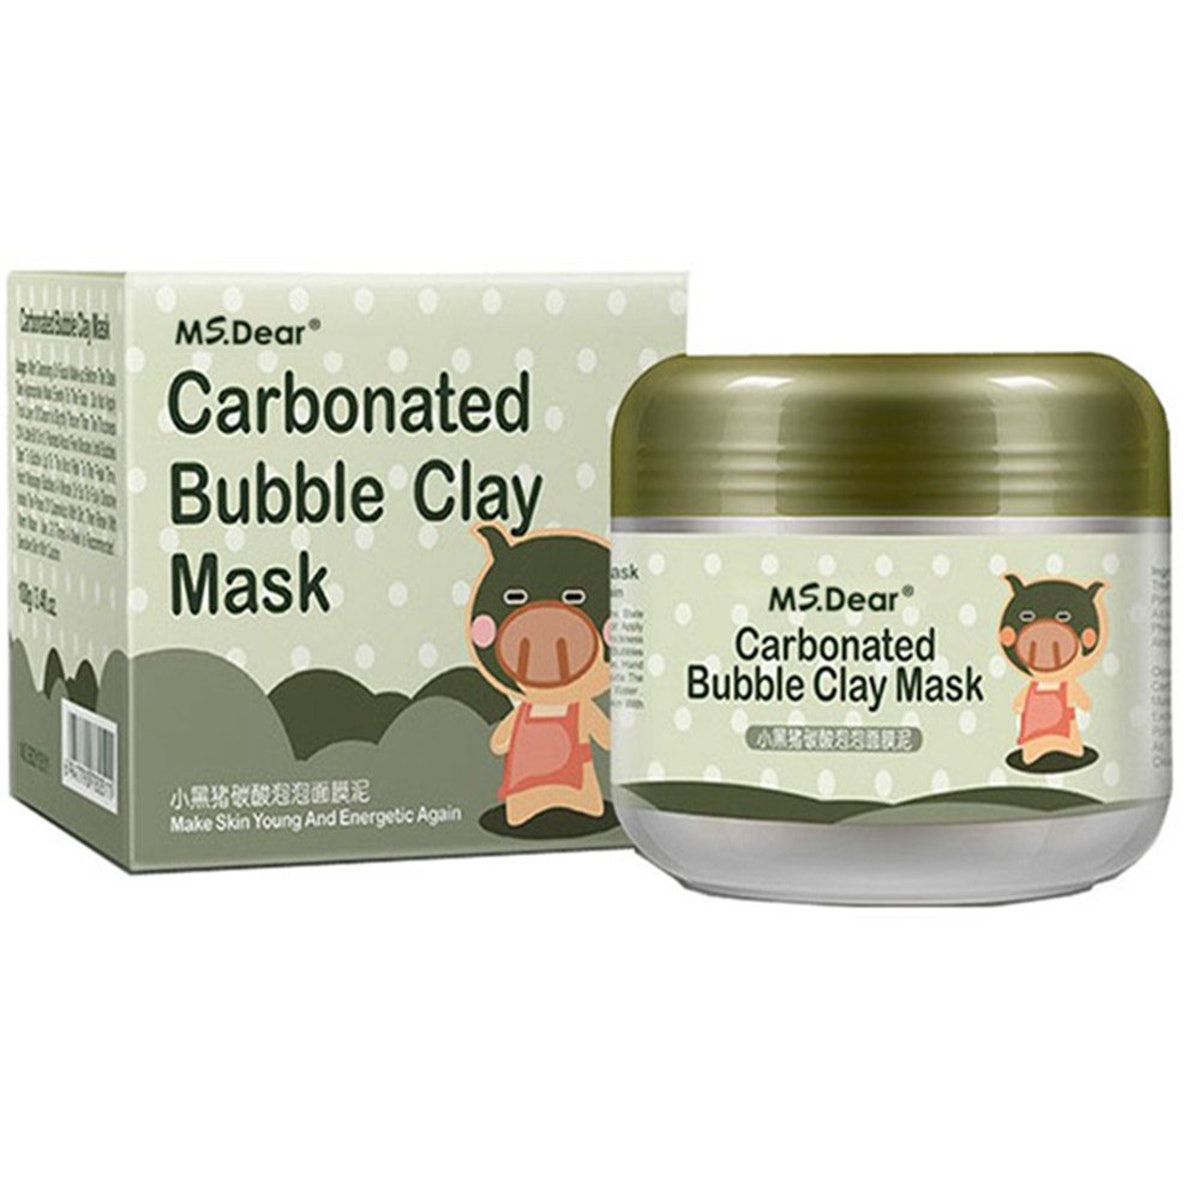 MS.DEAR Carbonated Bubble Clay Mask